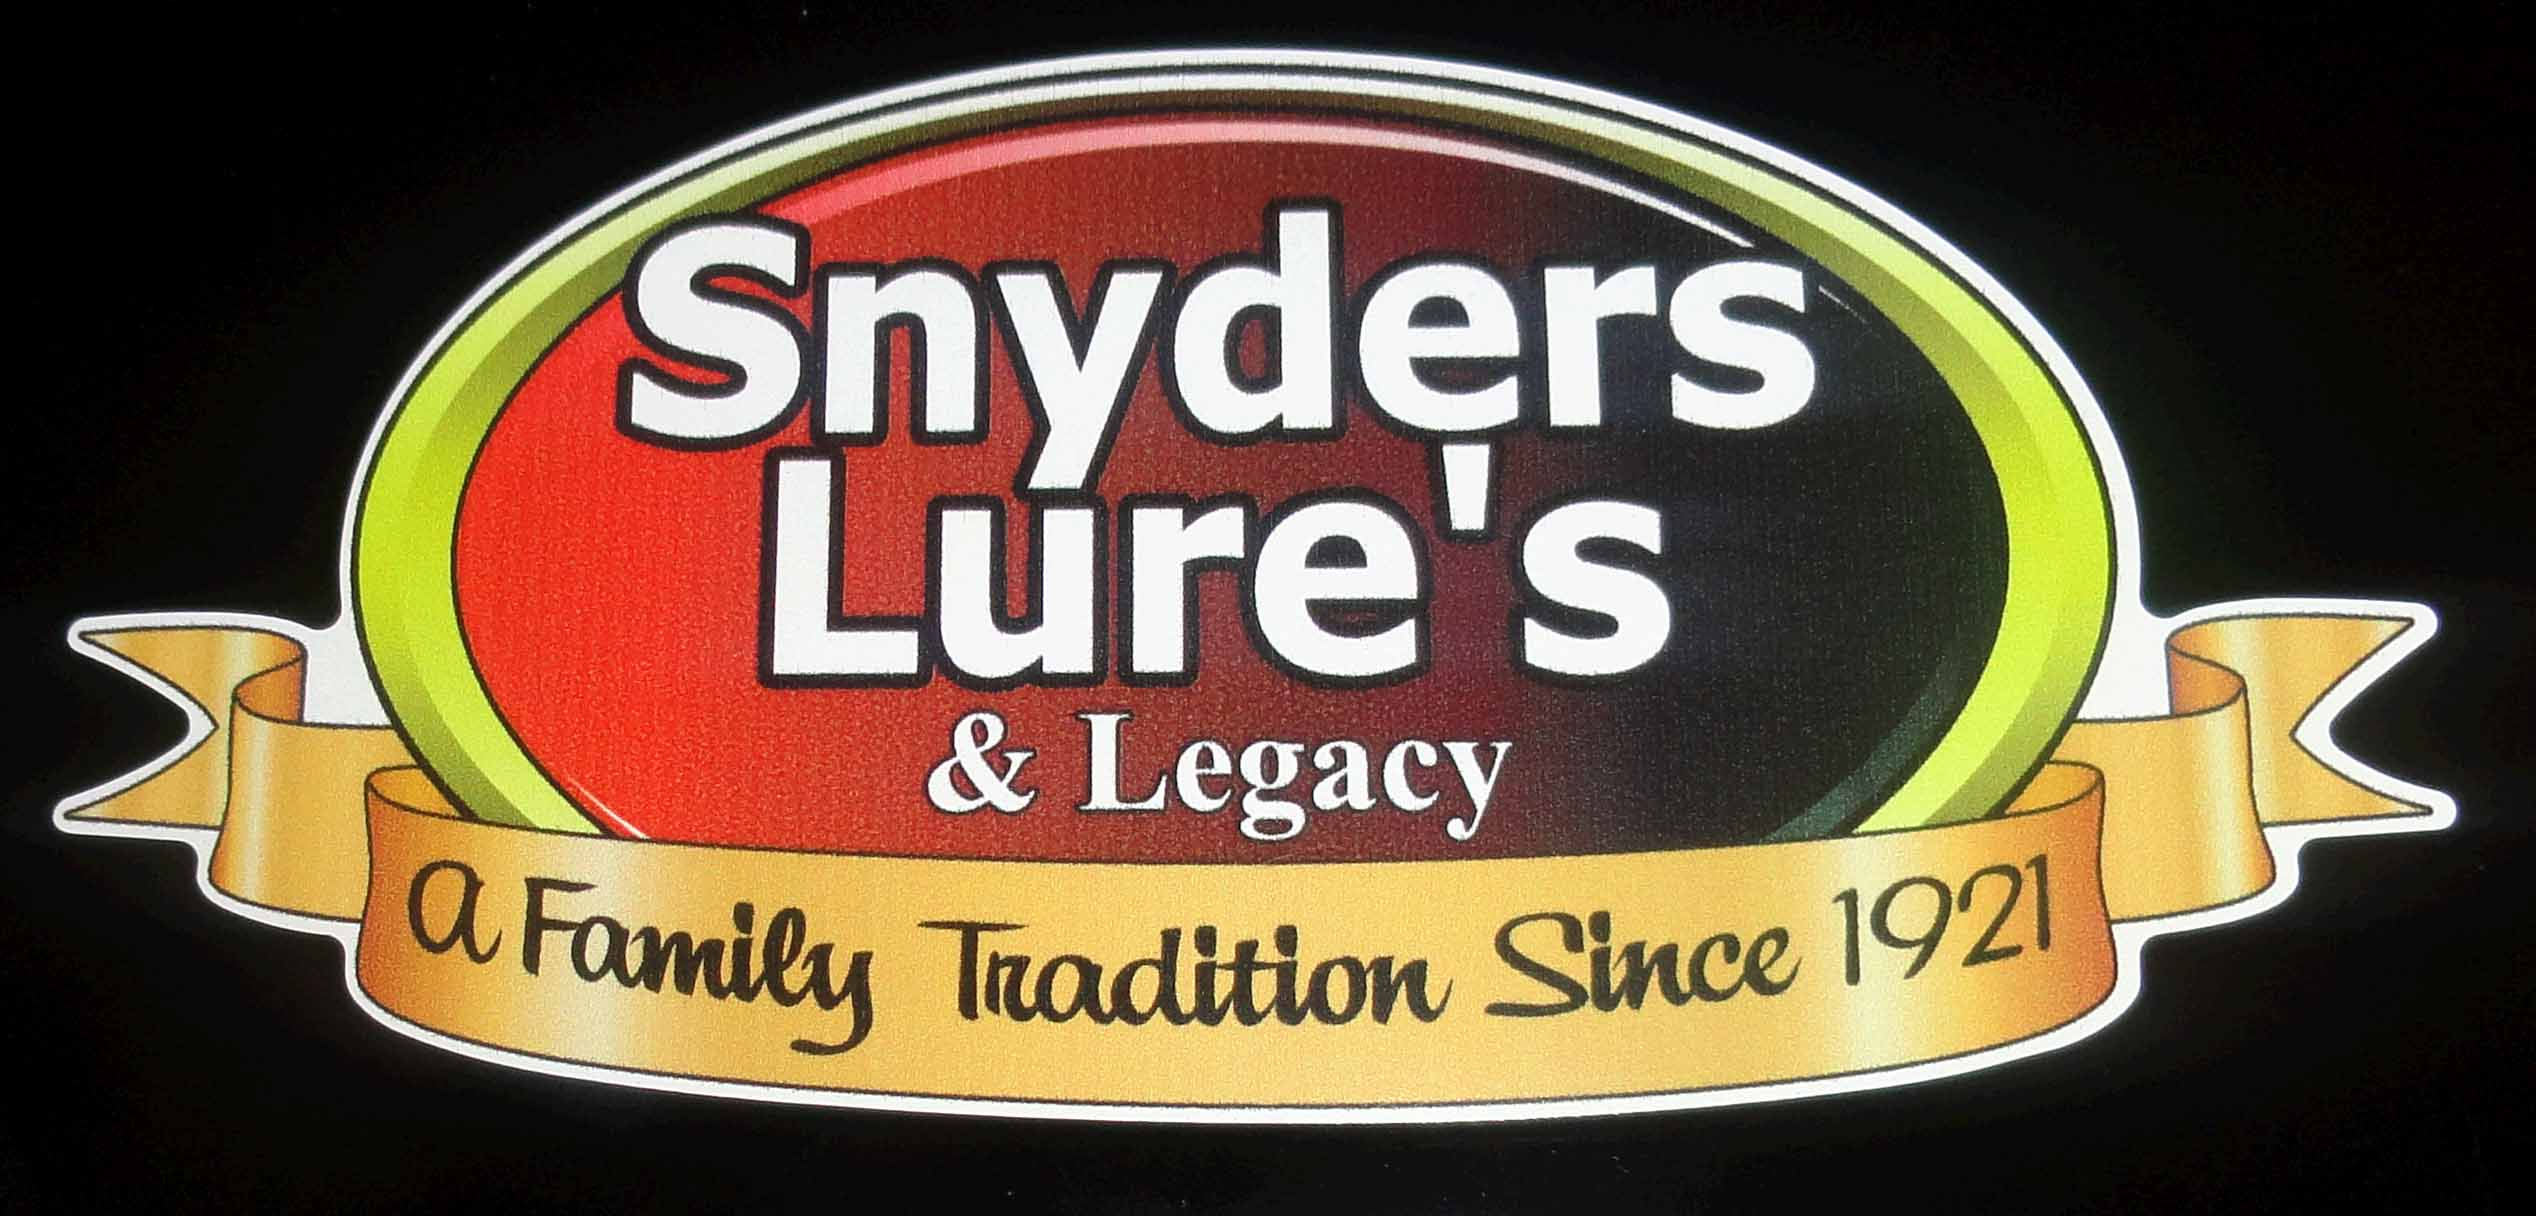 Snyders Lures & Legacy